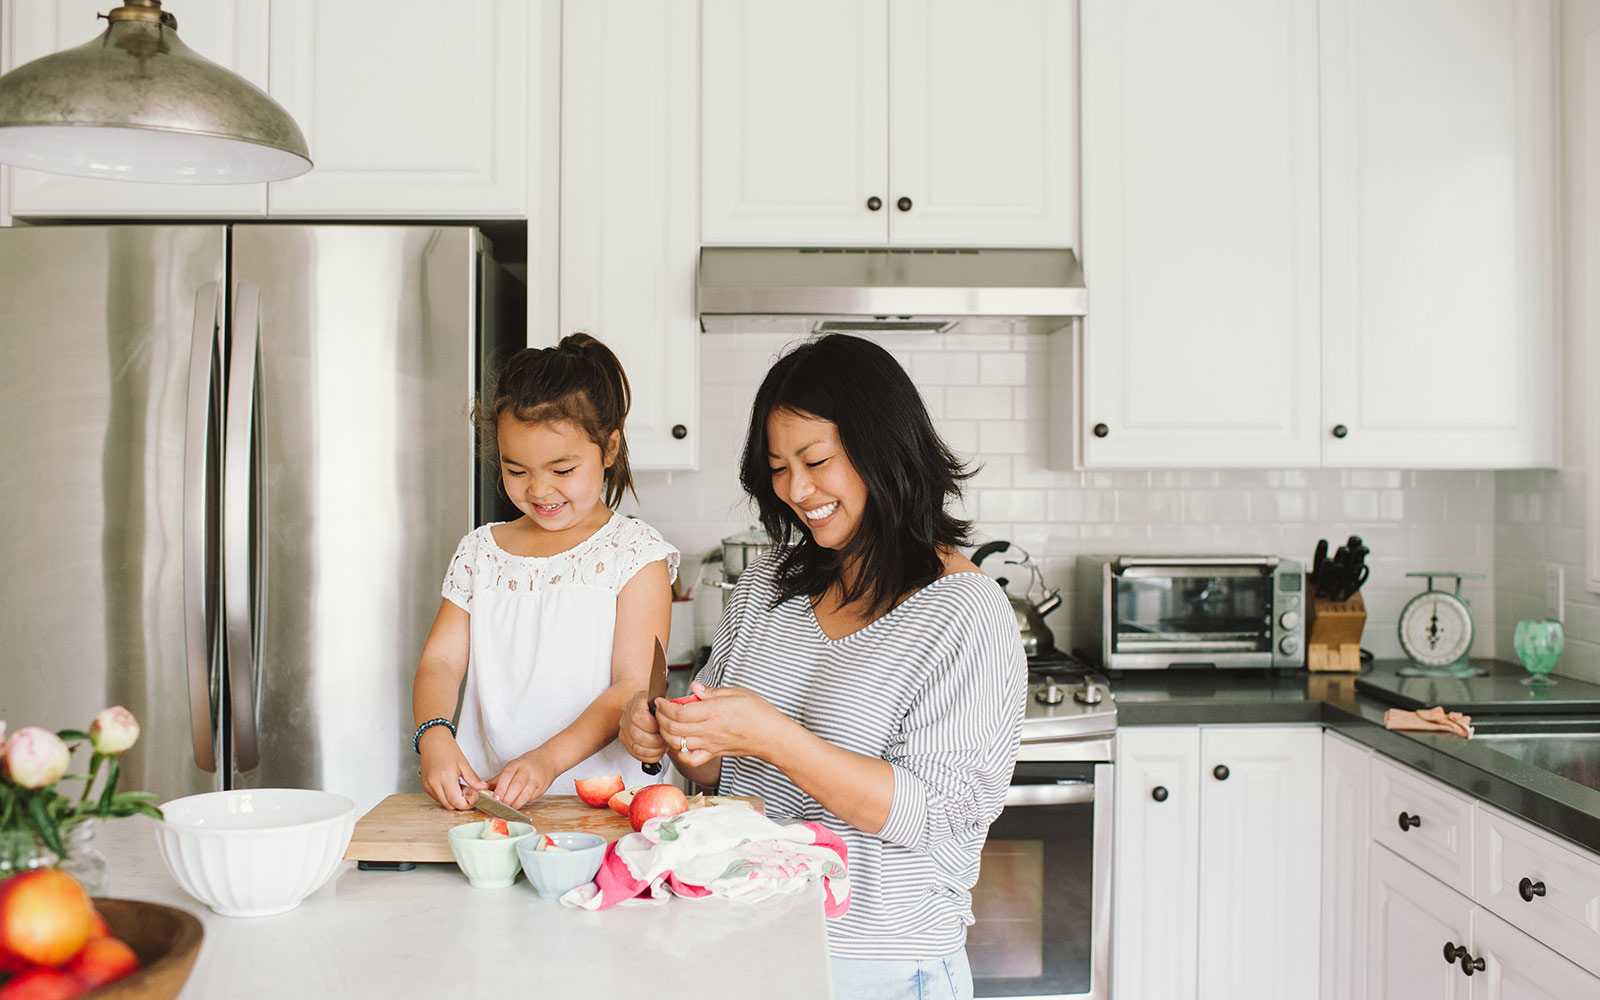 Mother and young daughter in the kitchen, cooking together while smiling